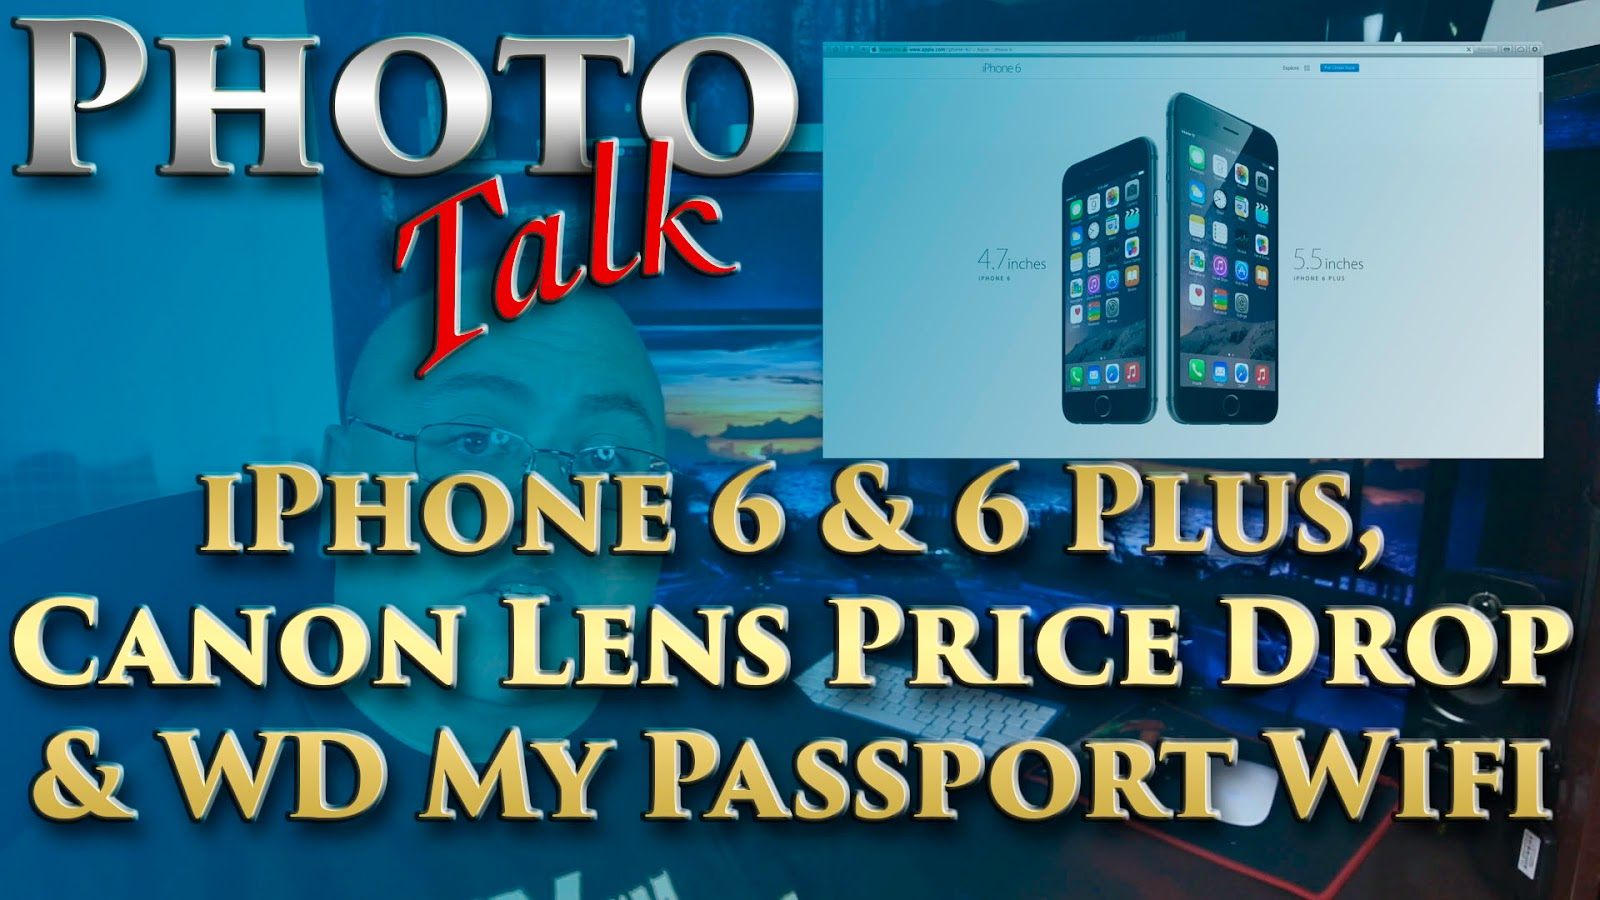 iPhone 6 & 6 Plus, Canon Lens Price Drop & WD My Passport Wifi